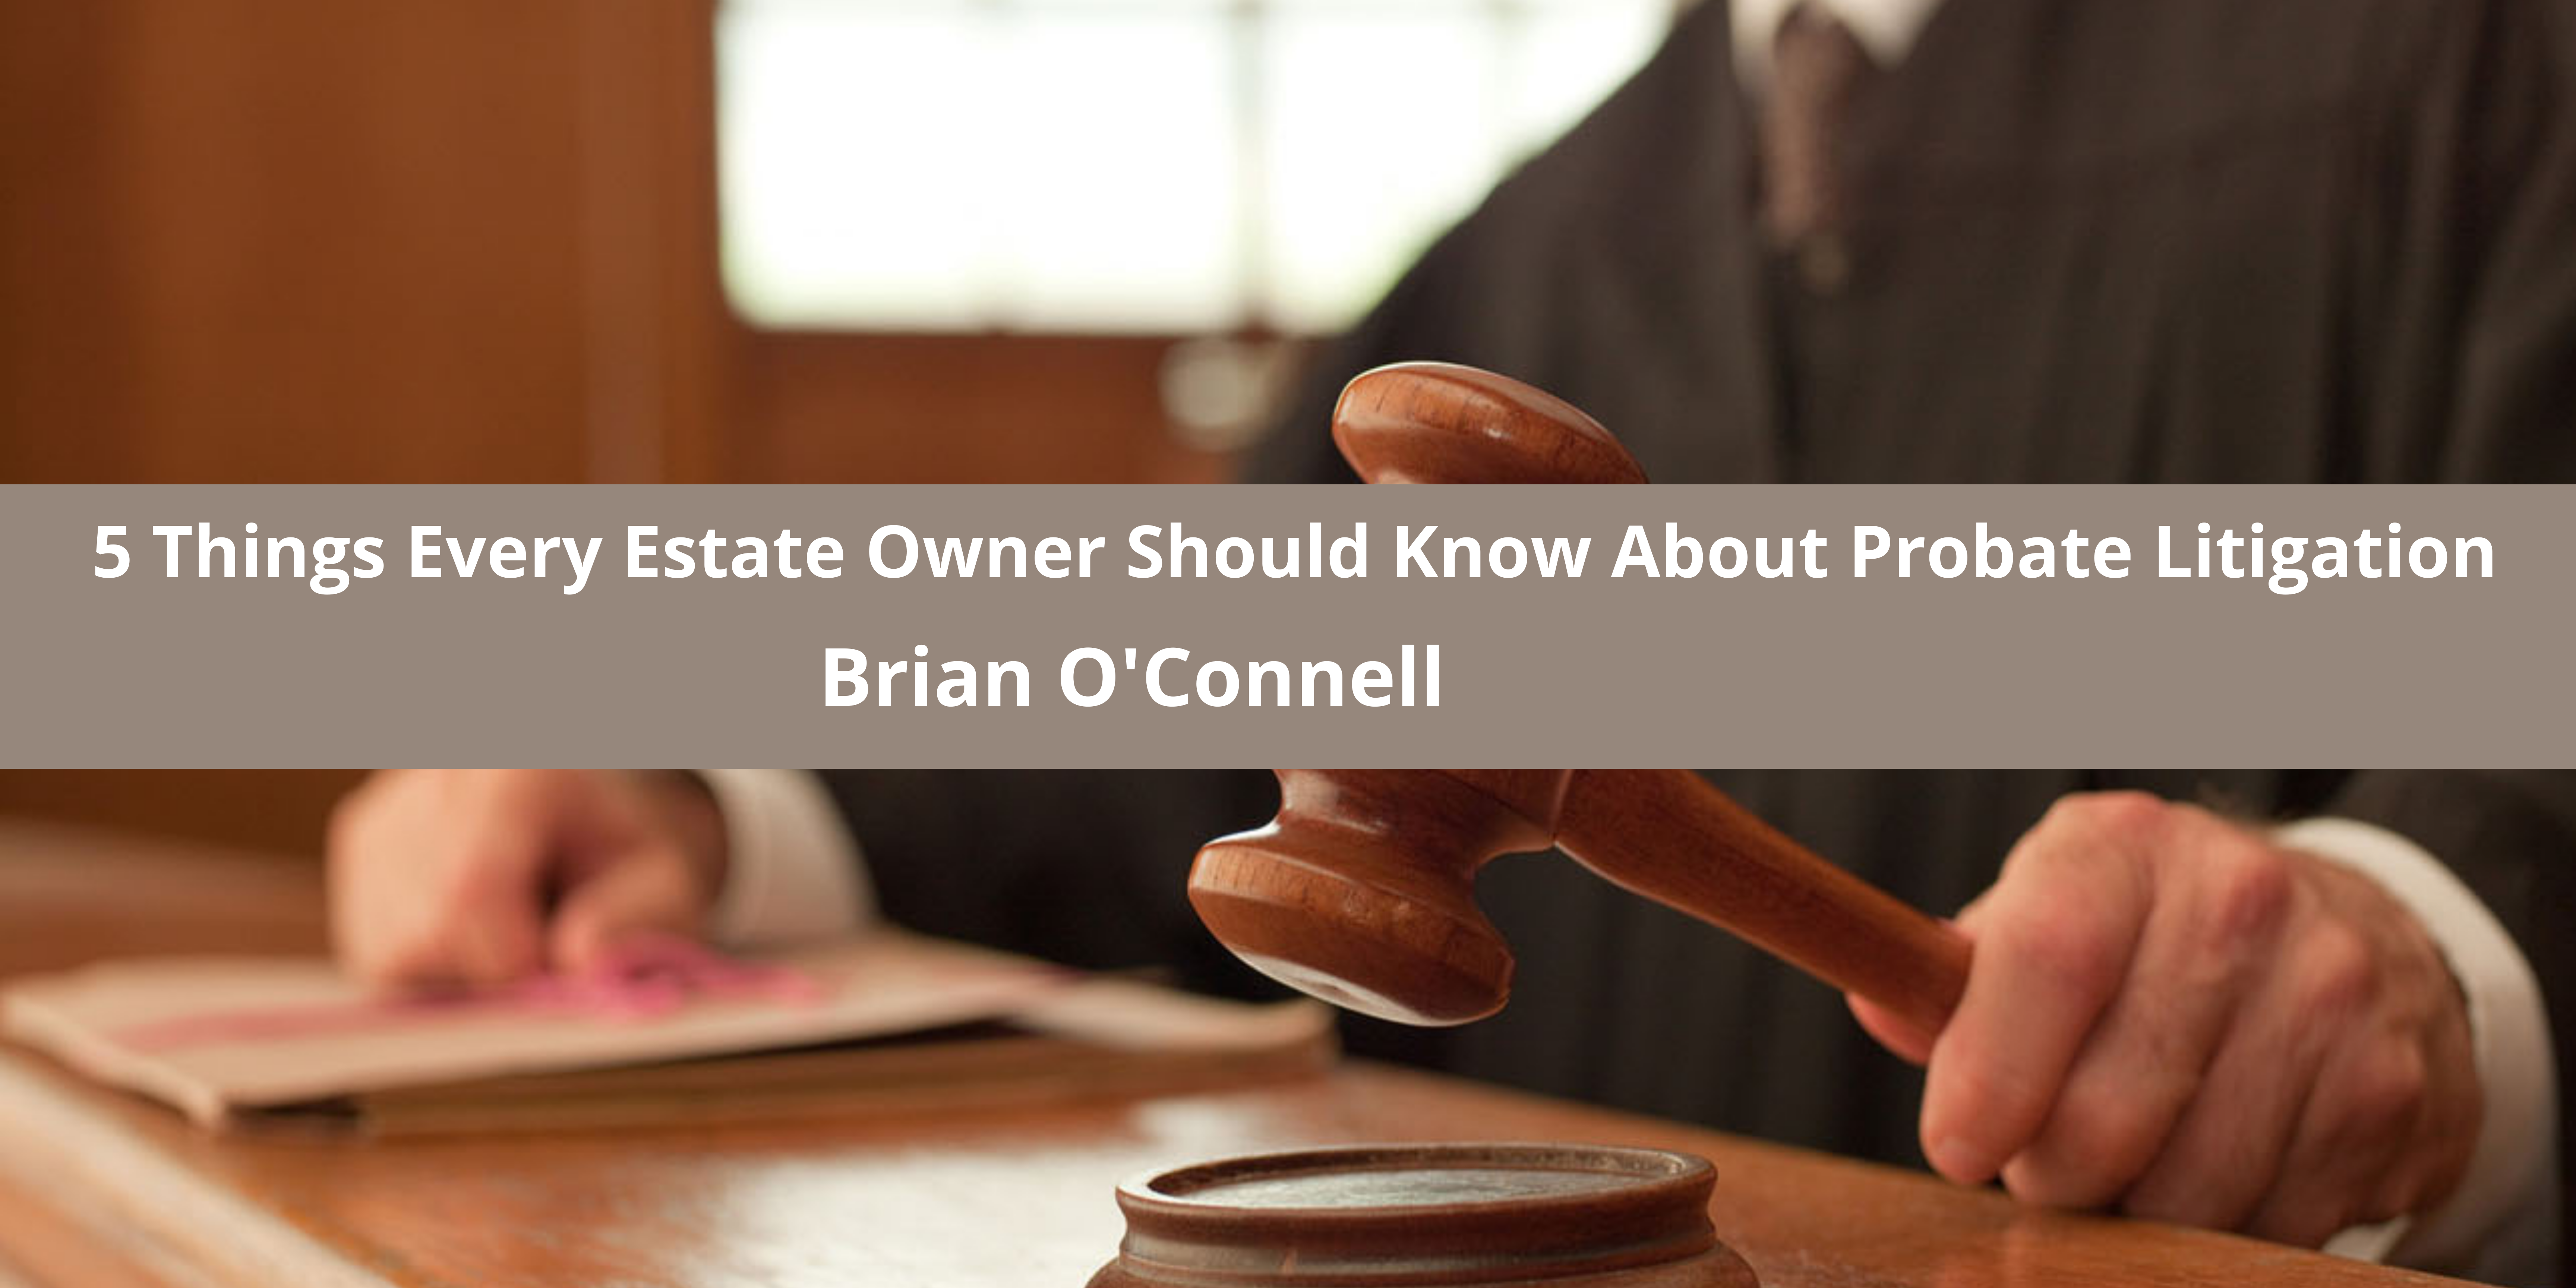 5 Things Every Estate Owner Should Know About Probate Litigation